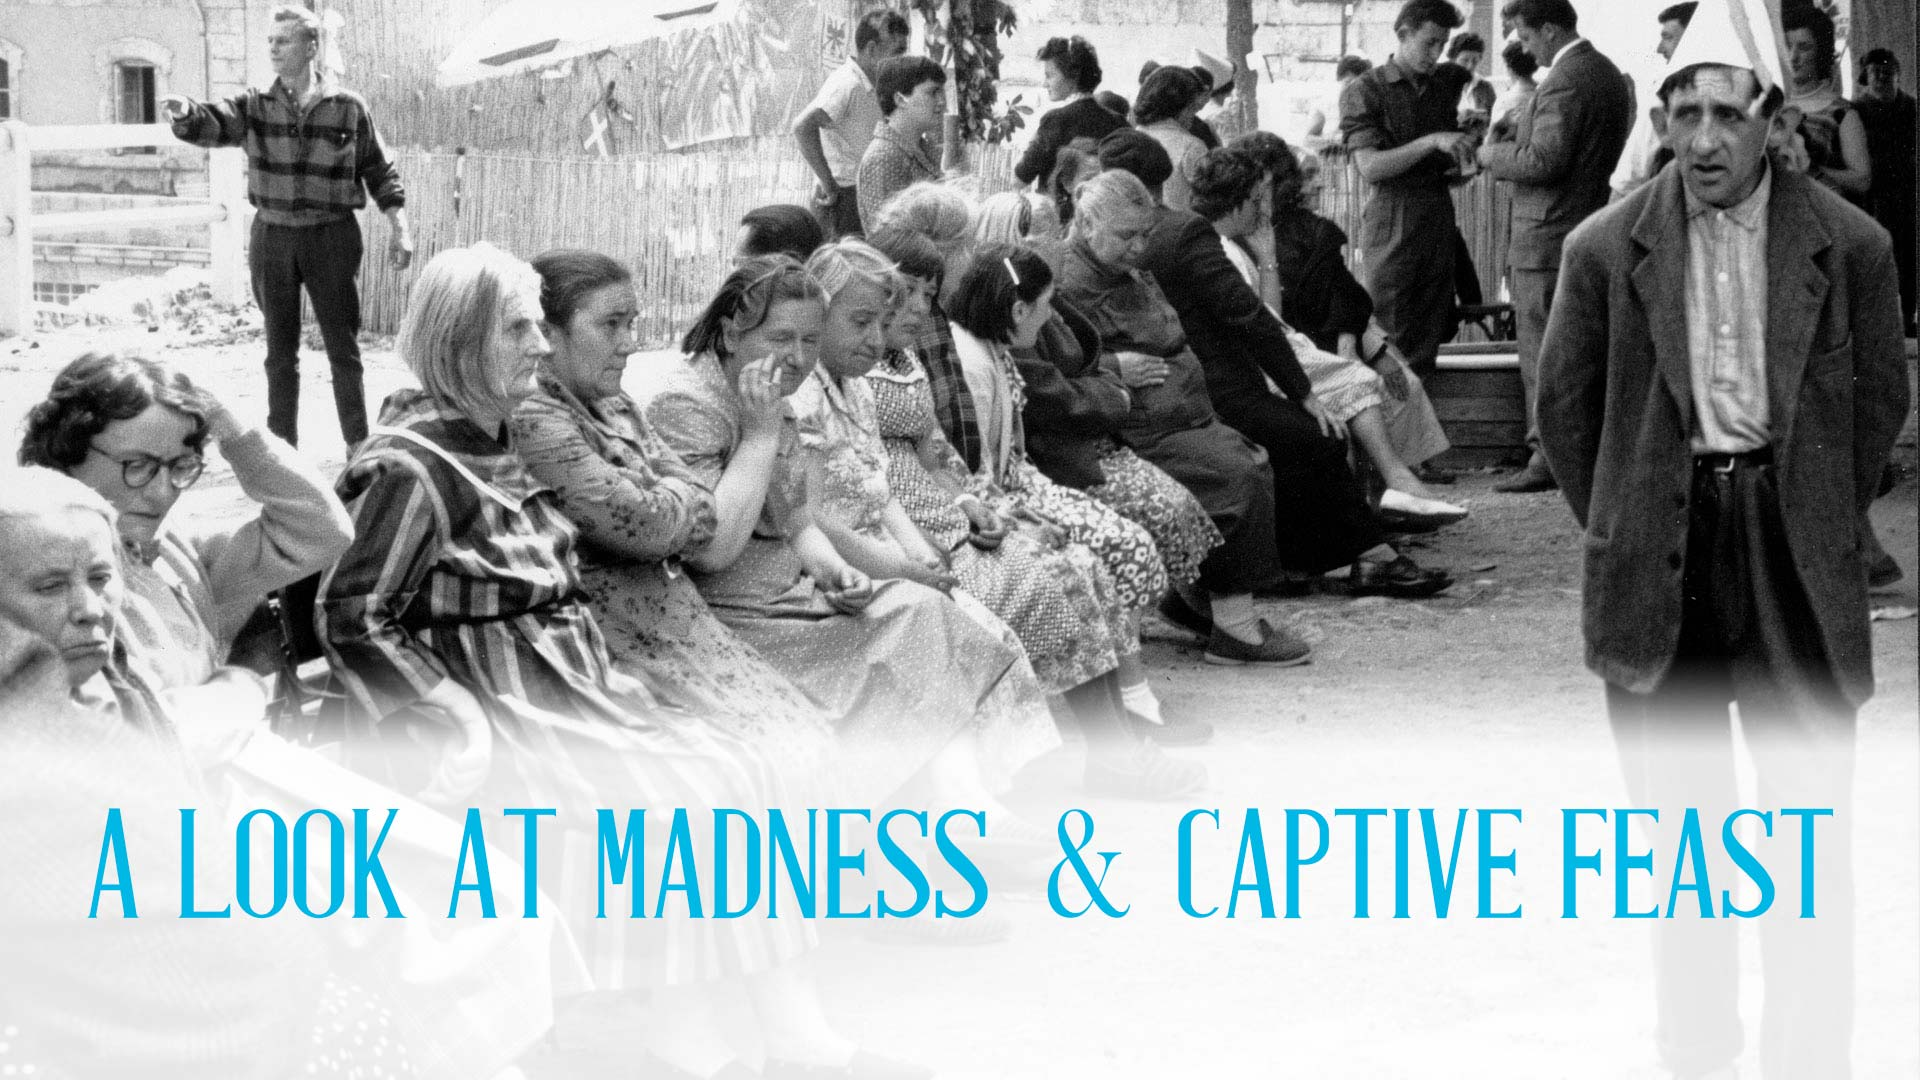 A Look at Madness / Captive Feast - image